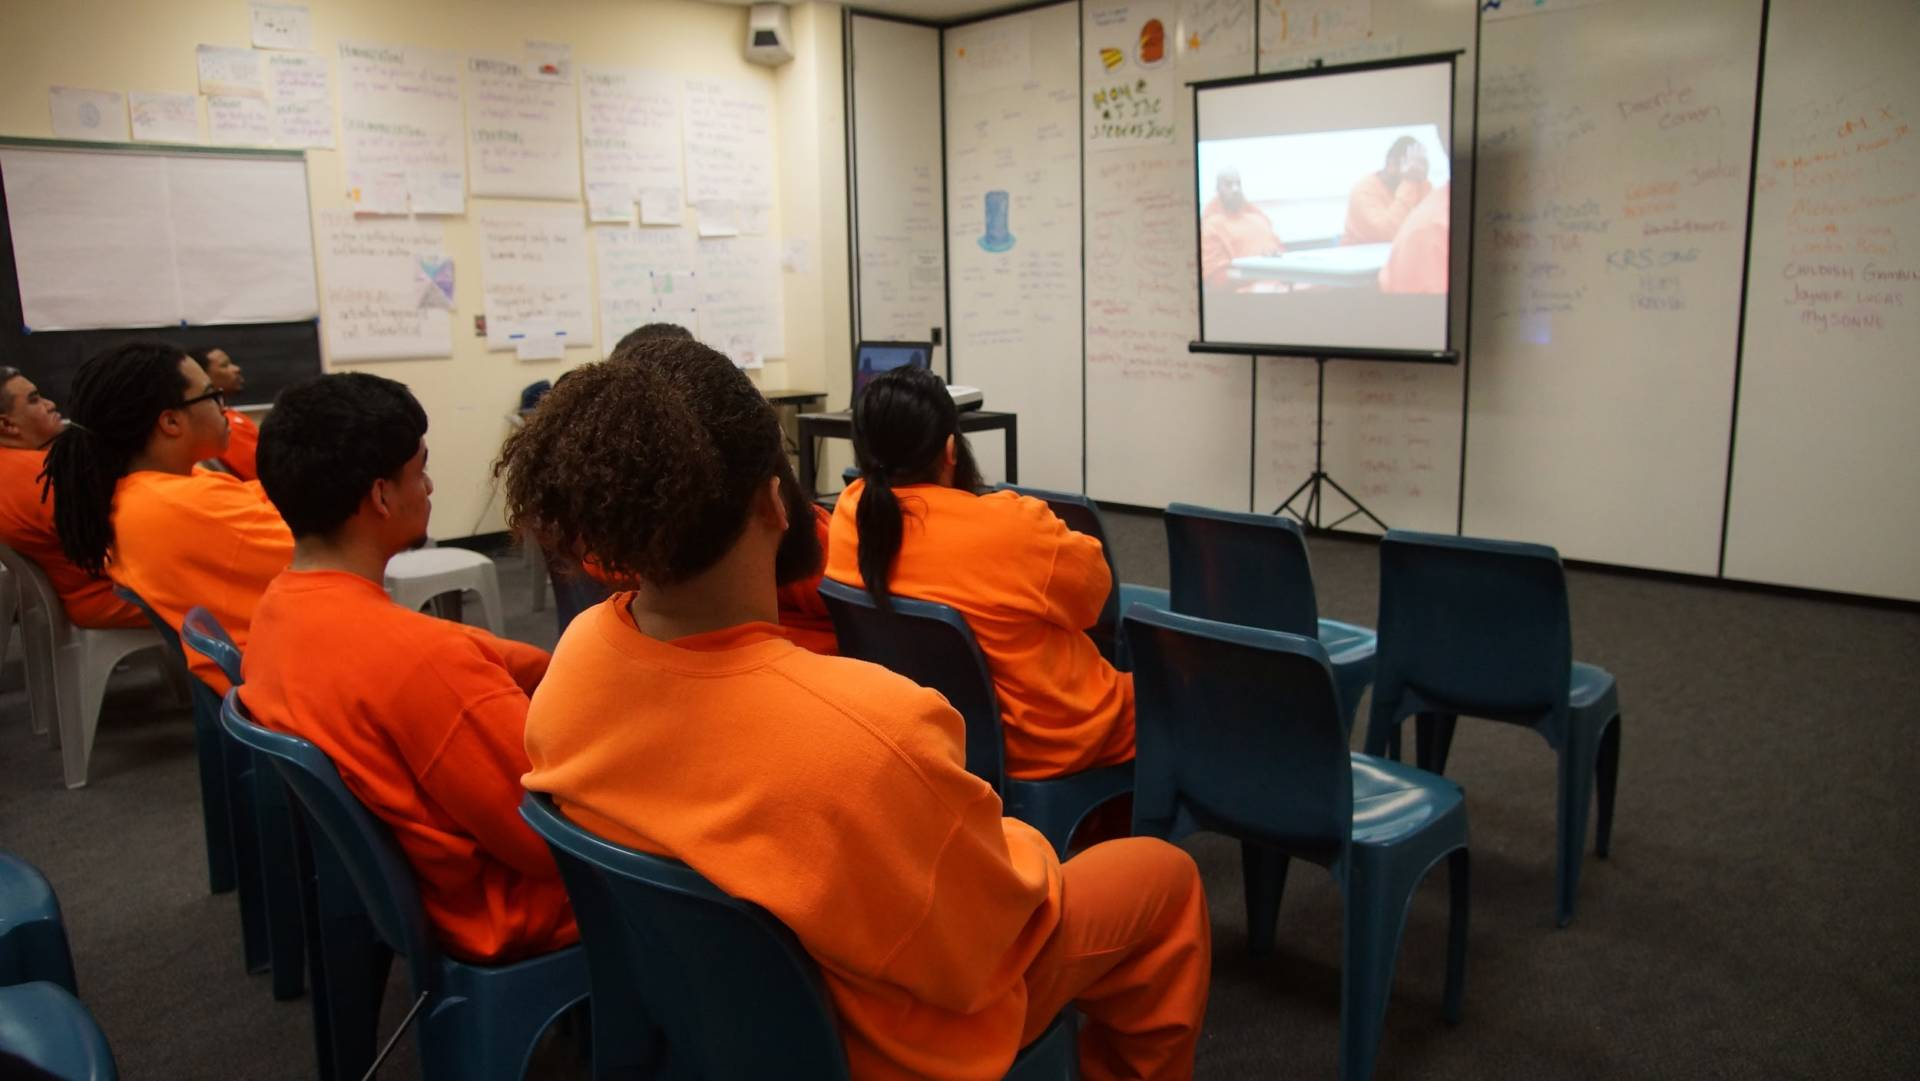 Students at Five Keys Charter School watch The Corridor, a documentary film about the nation's first high school inside an adult jail, which airs on KQED's Truly CA on Friday, June 22 at 8 PM.